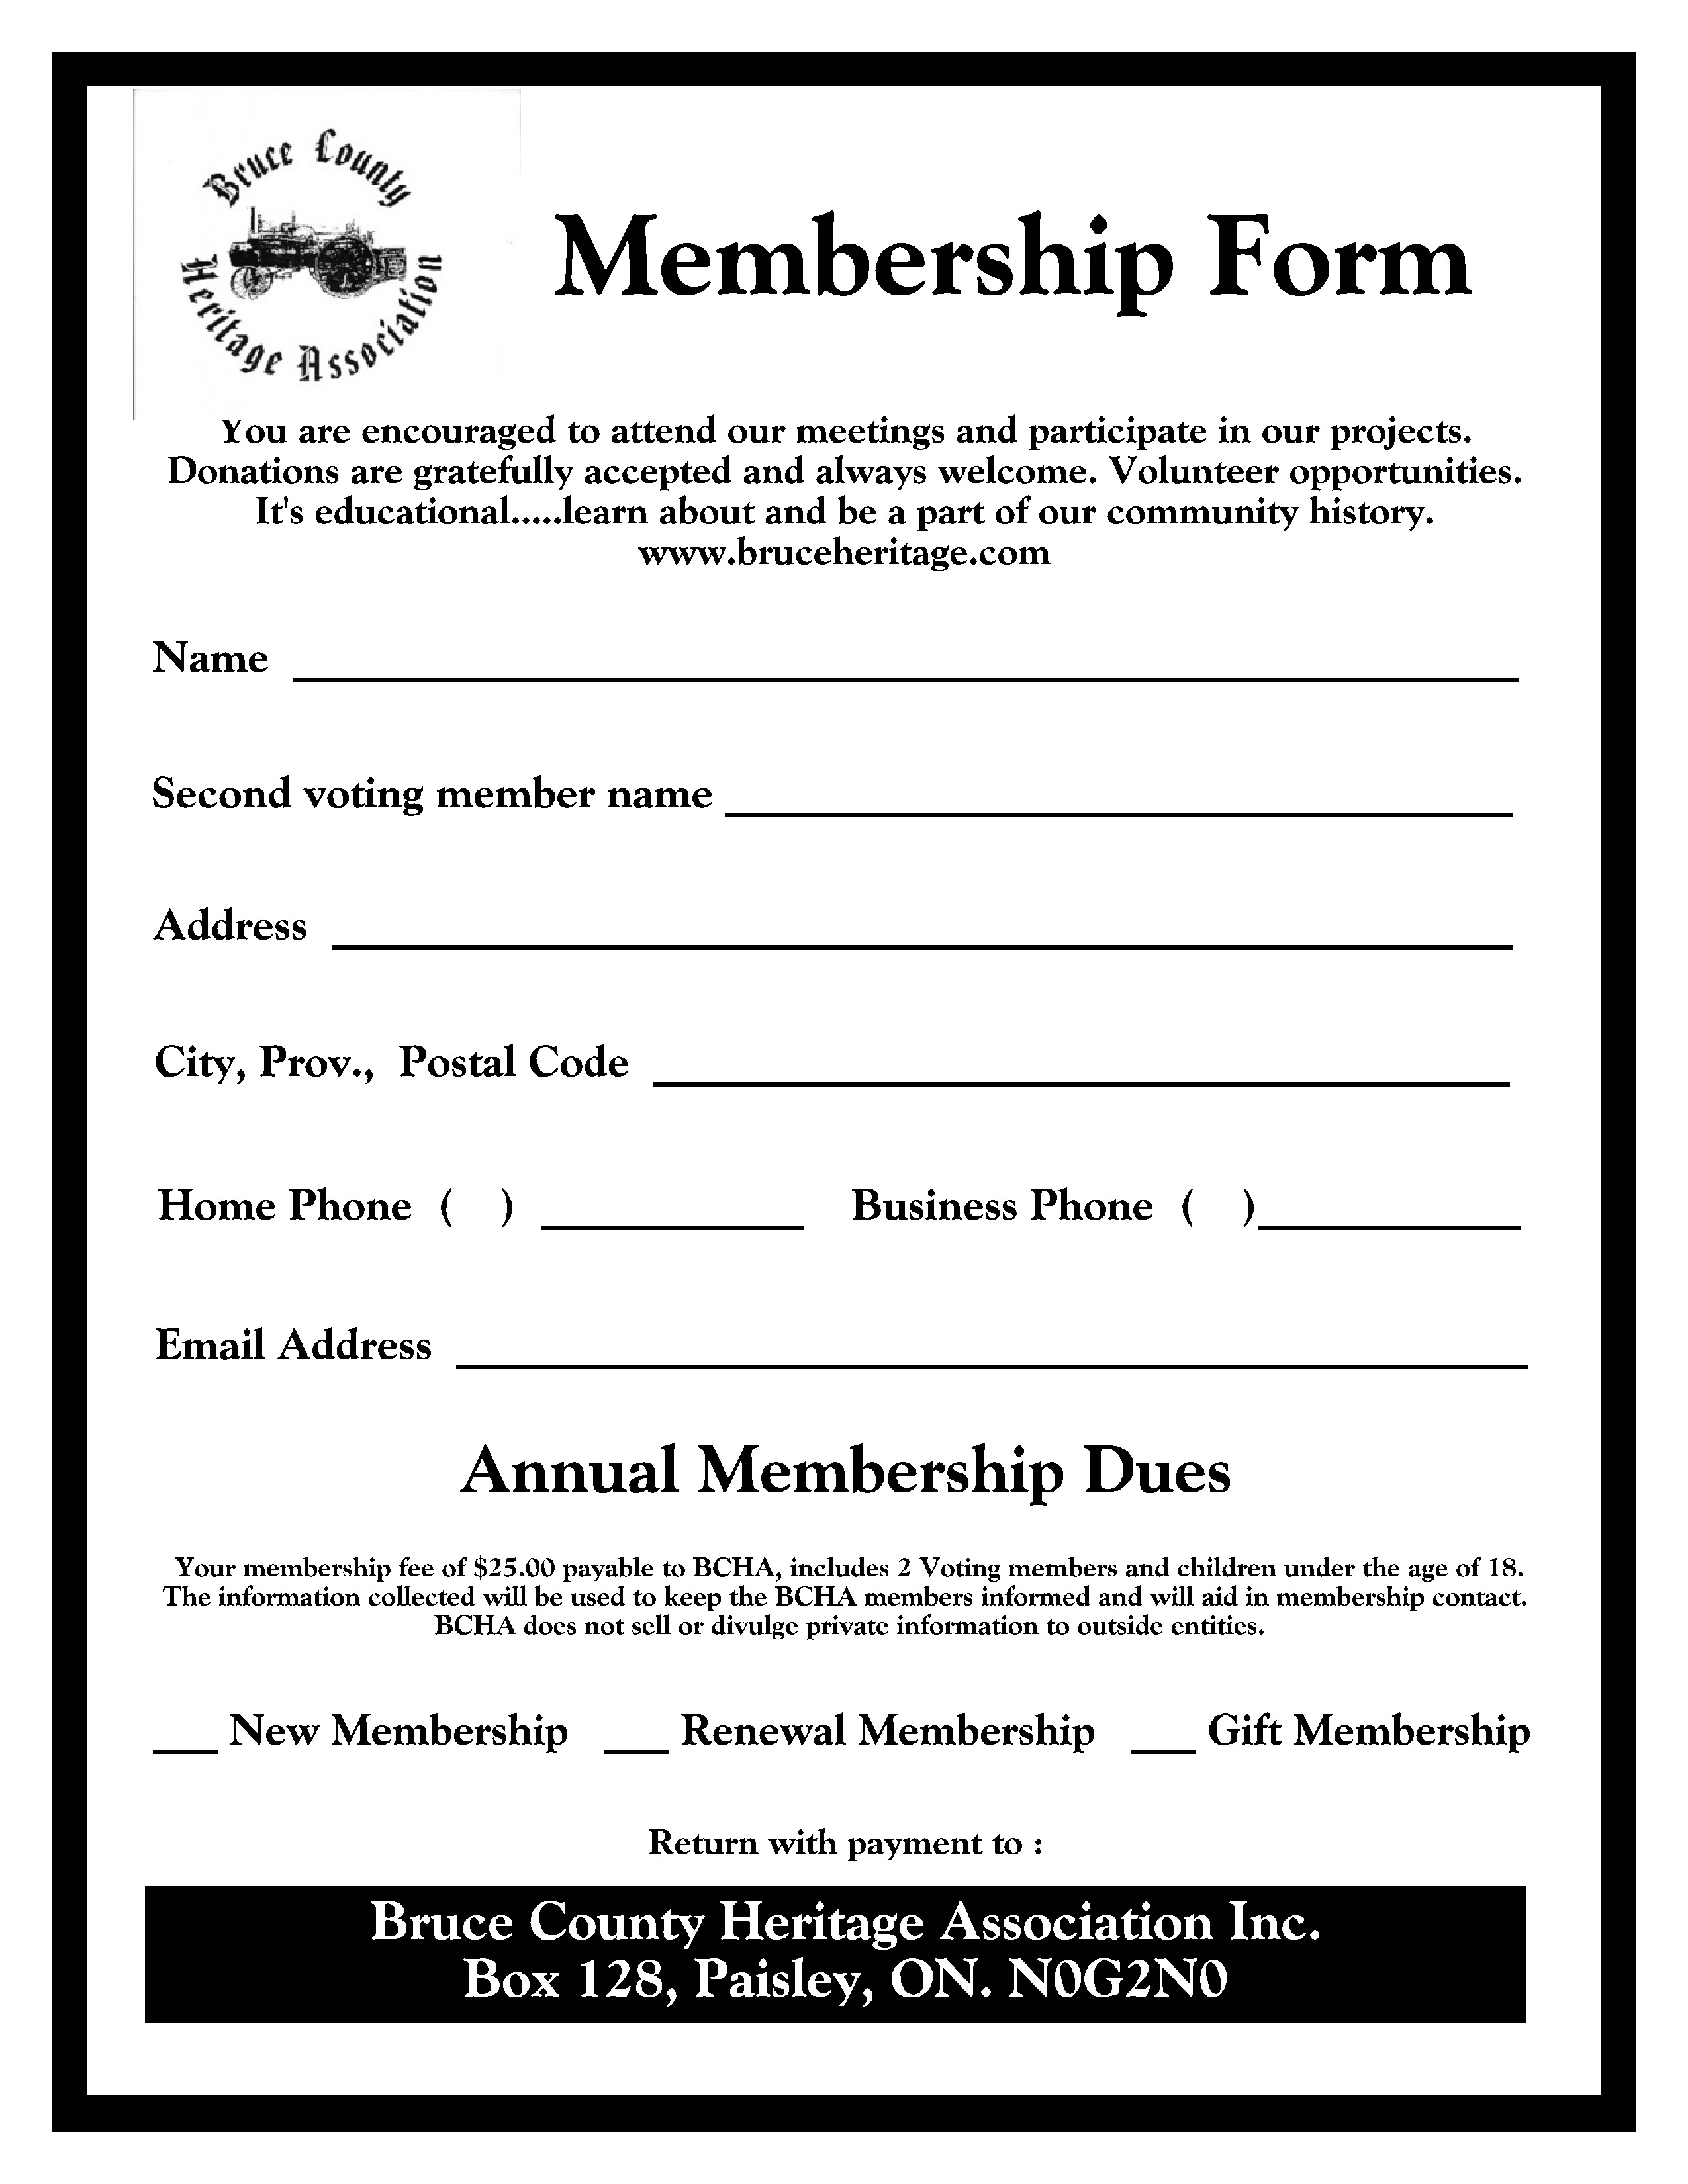 bcha membership form bruce county heritage association